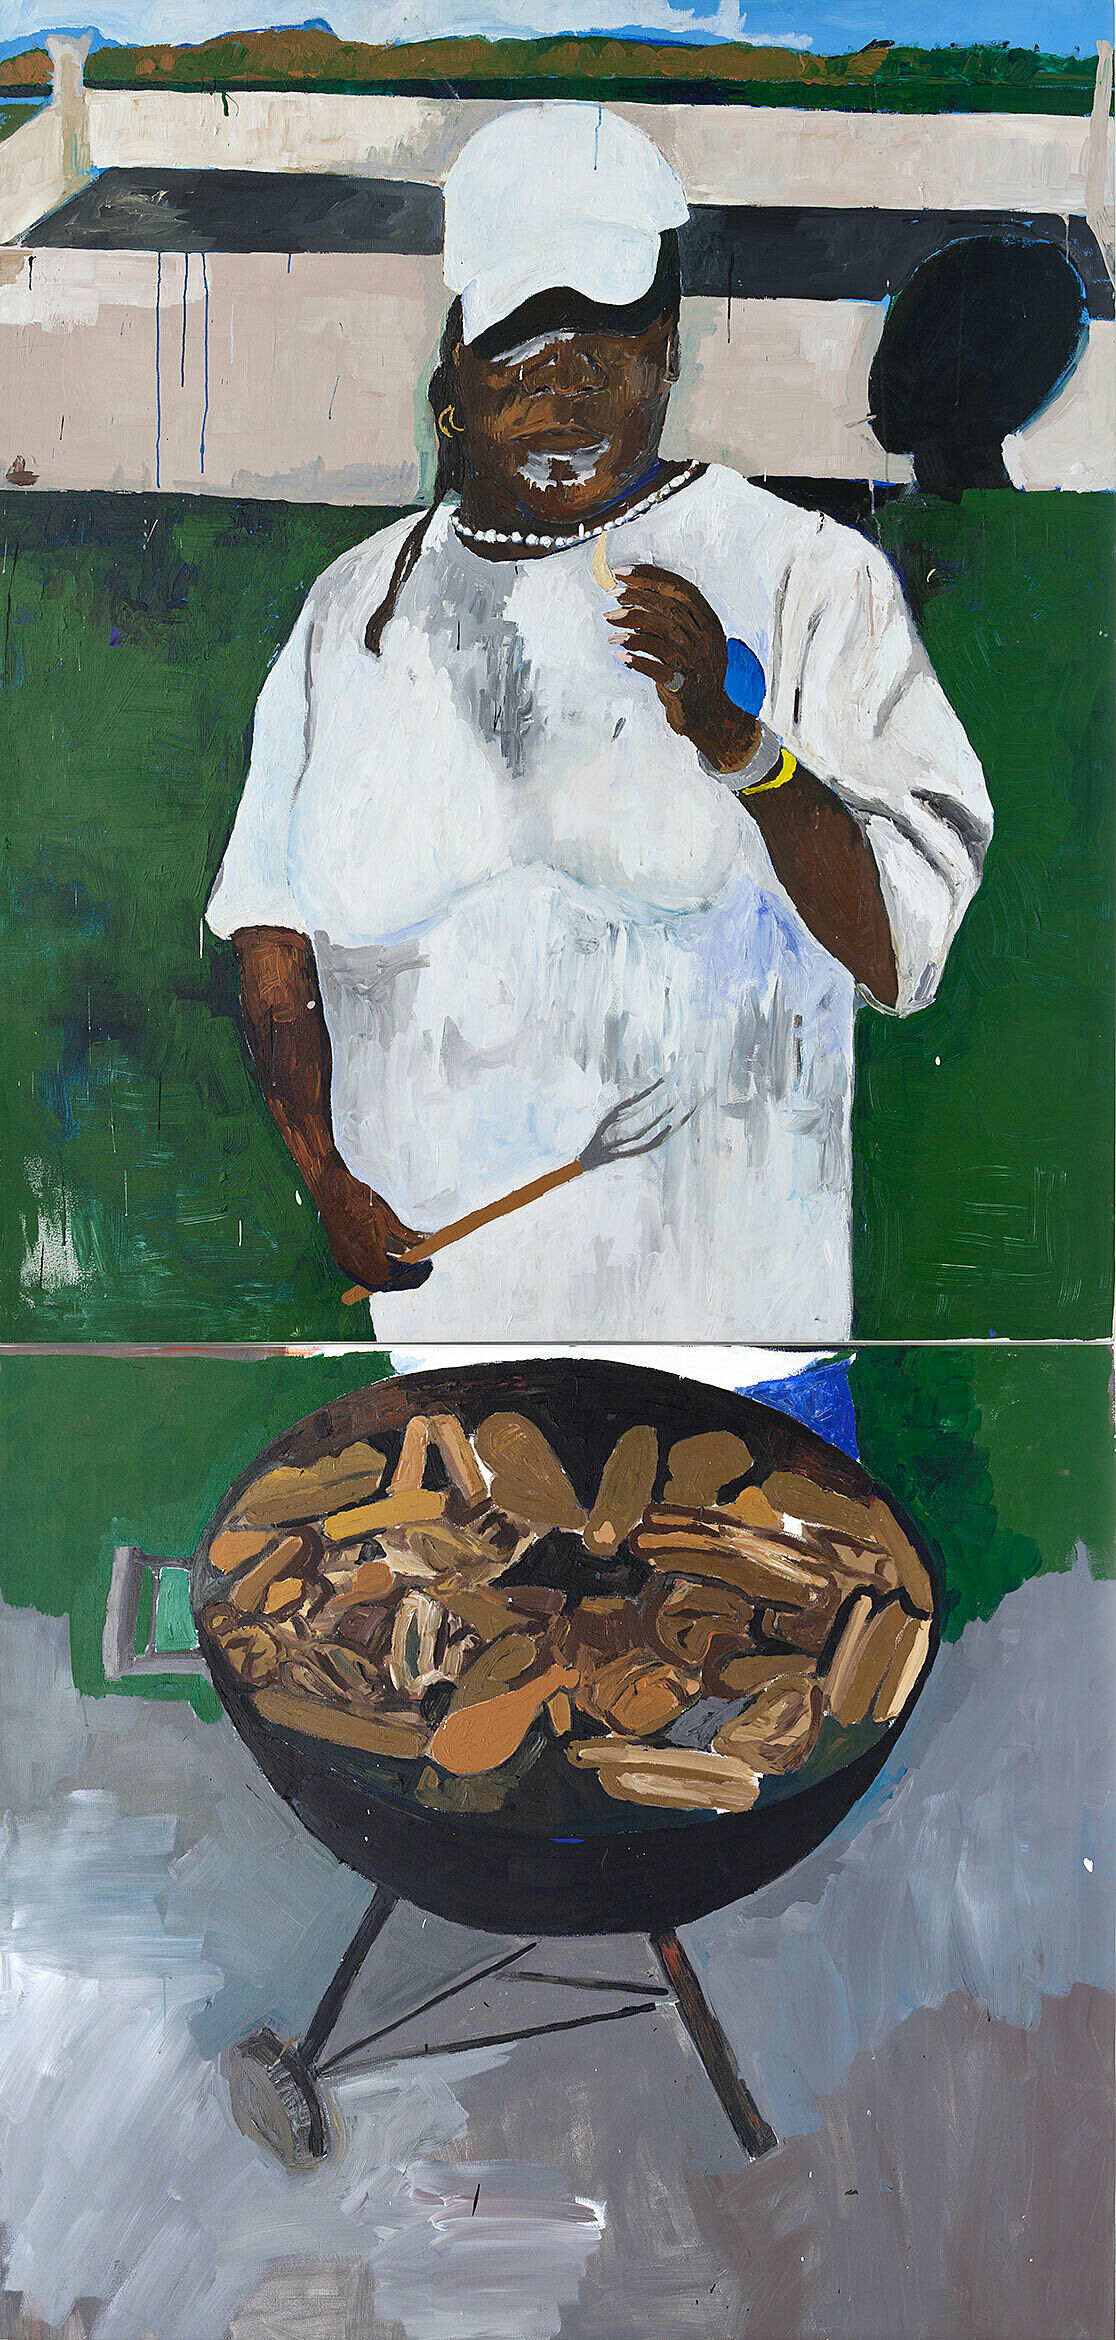 Painting of a man grilling meat